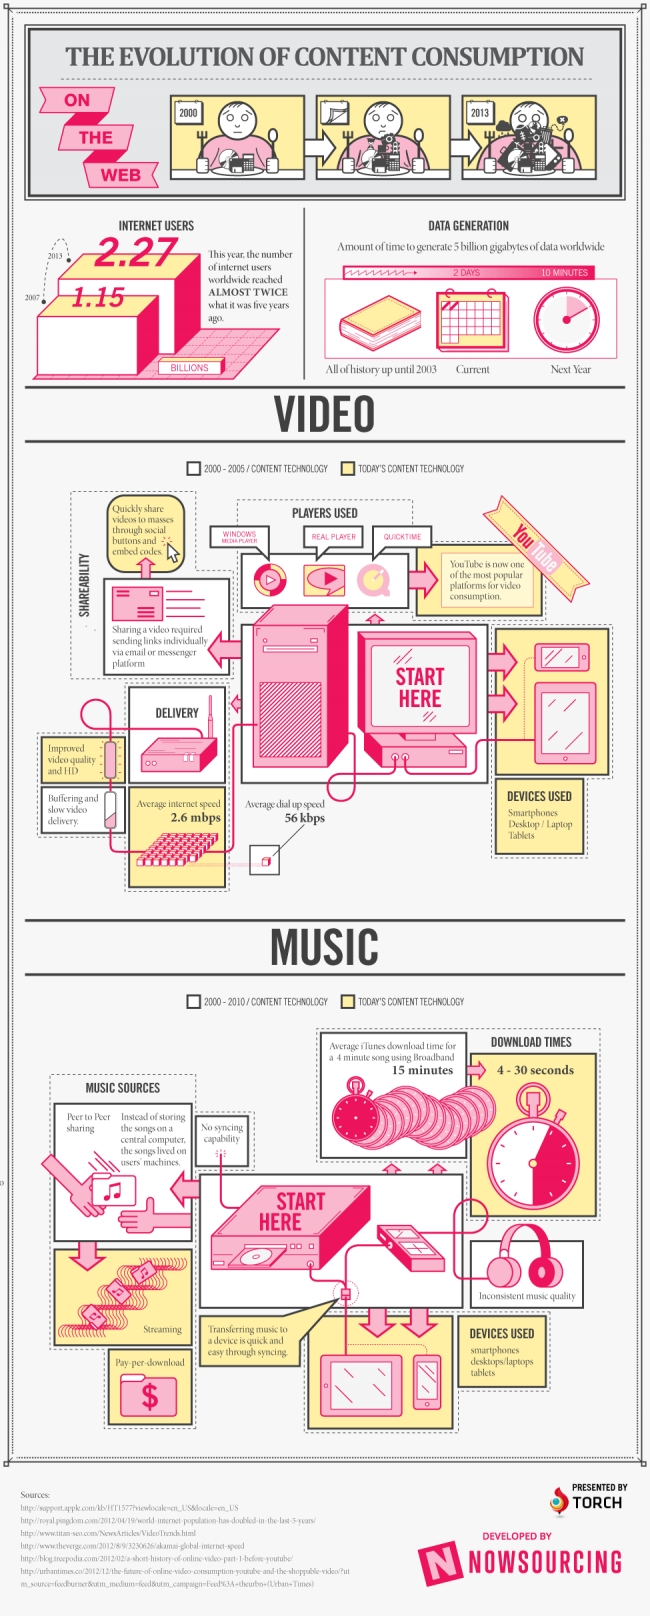 The Evolution of Music and Video Content Consumption